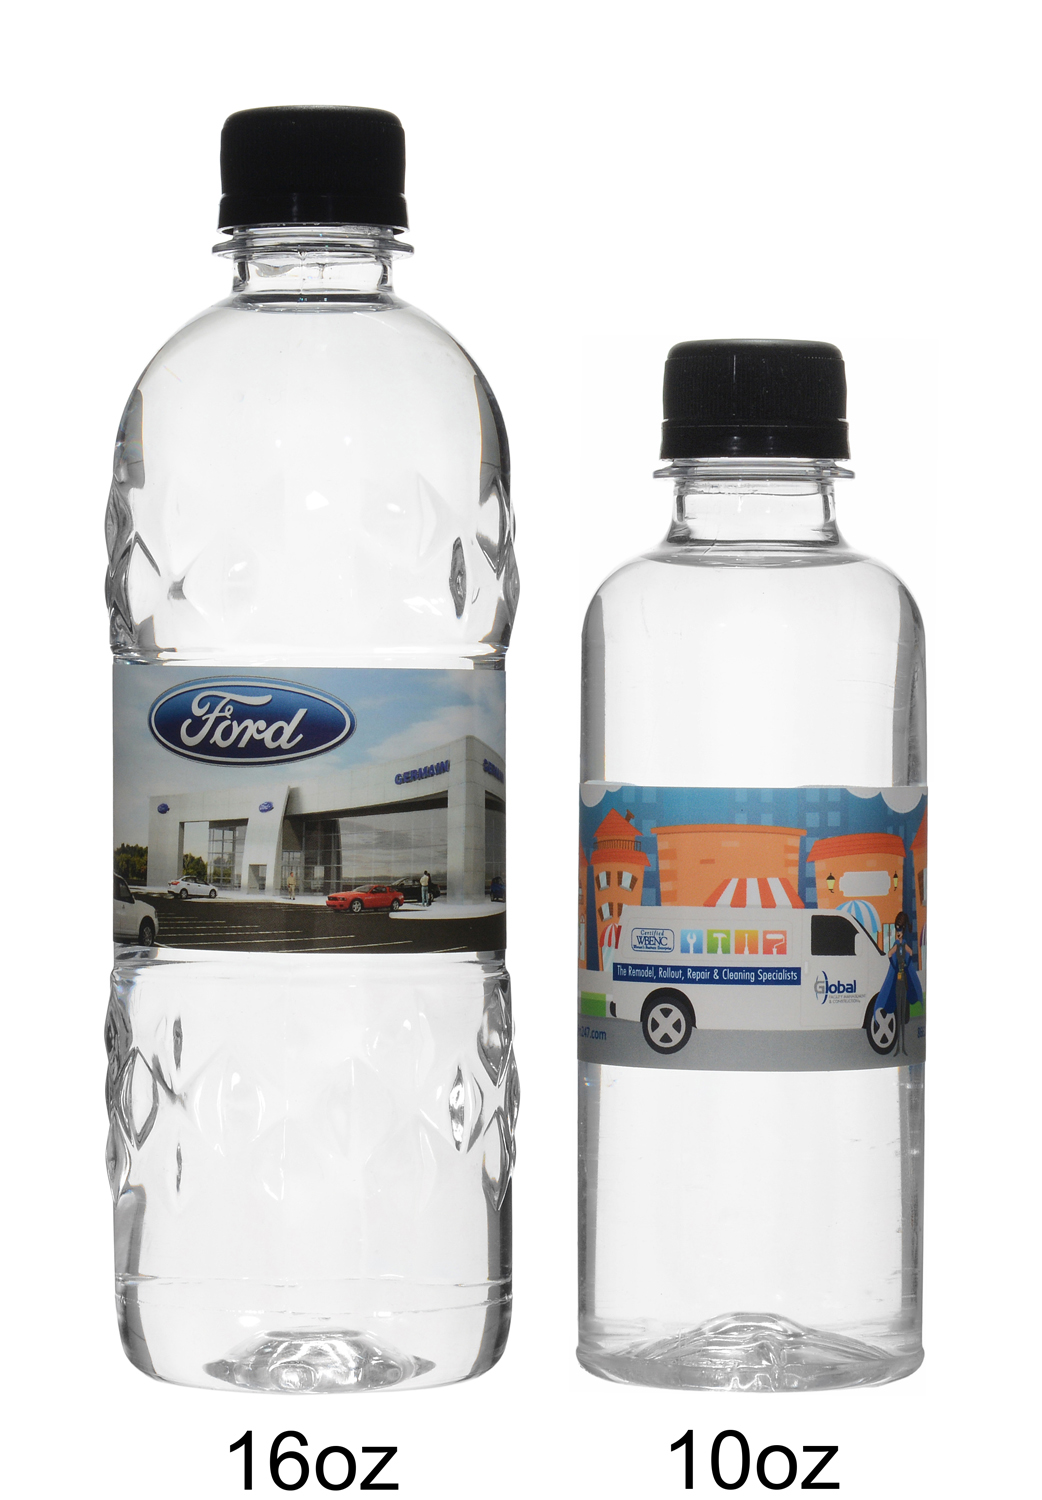 Custom water bottles produced and shipped from Canada.